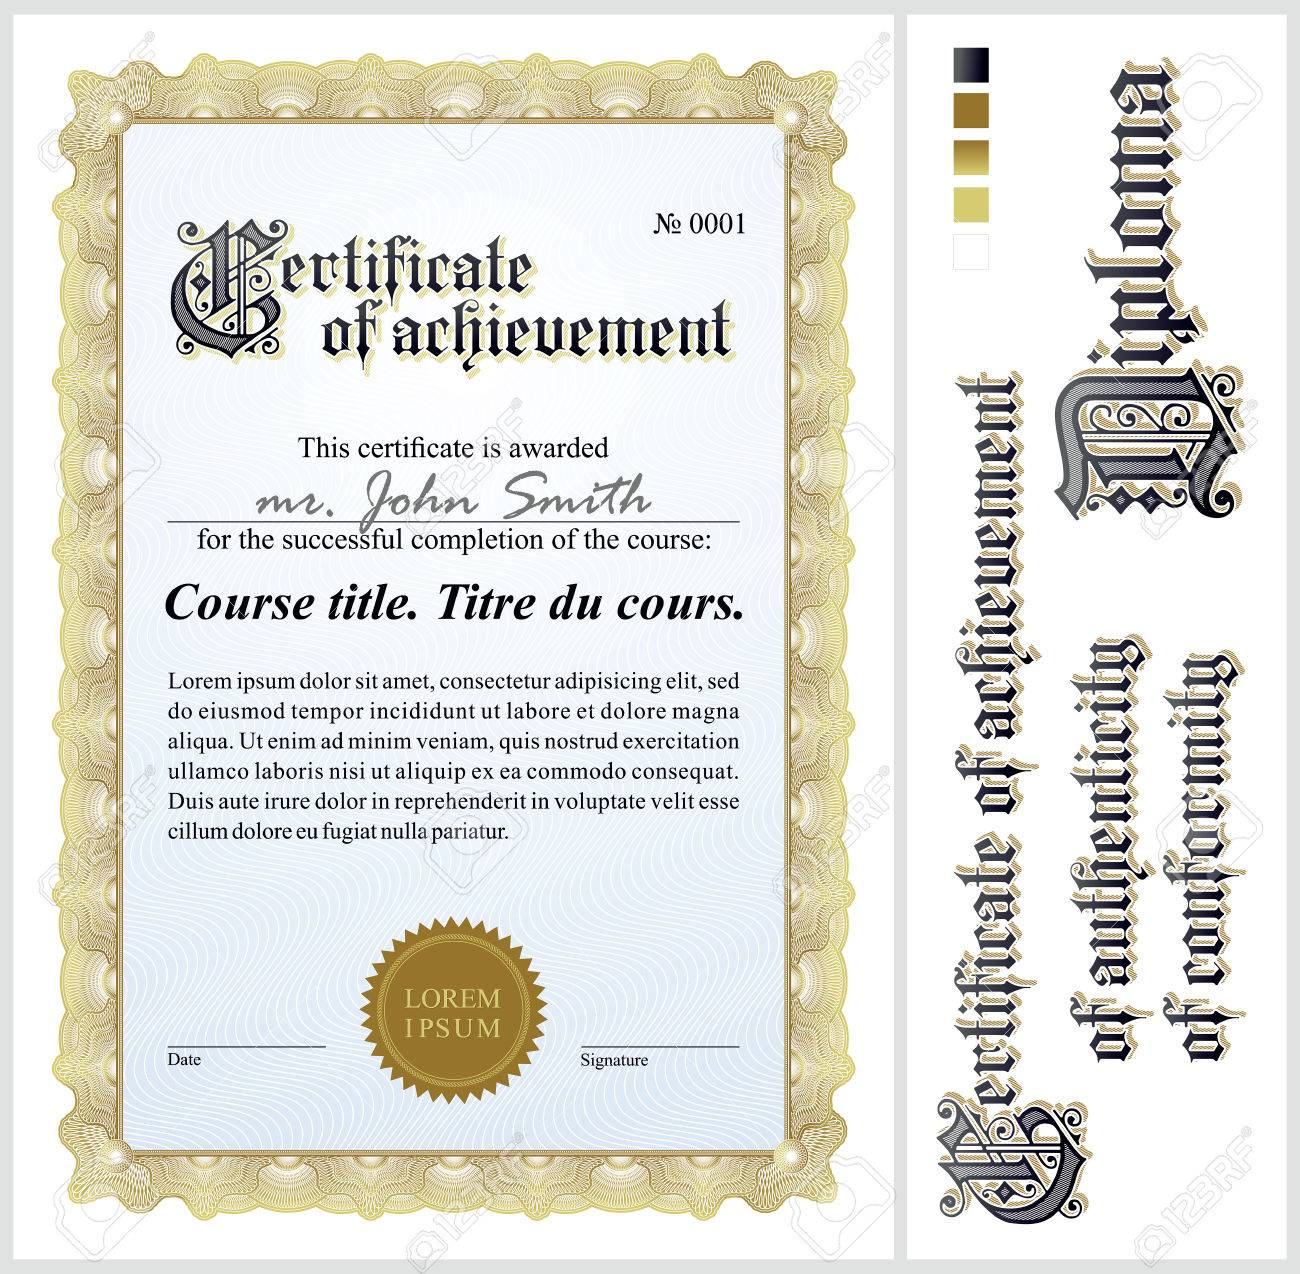 Certificate of authenticity template aplg how to draw house map f150 best certificate of authenticity templates ideas entry level 29378991 gold certificate template vertical additional design elements 1betcityfo Images